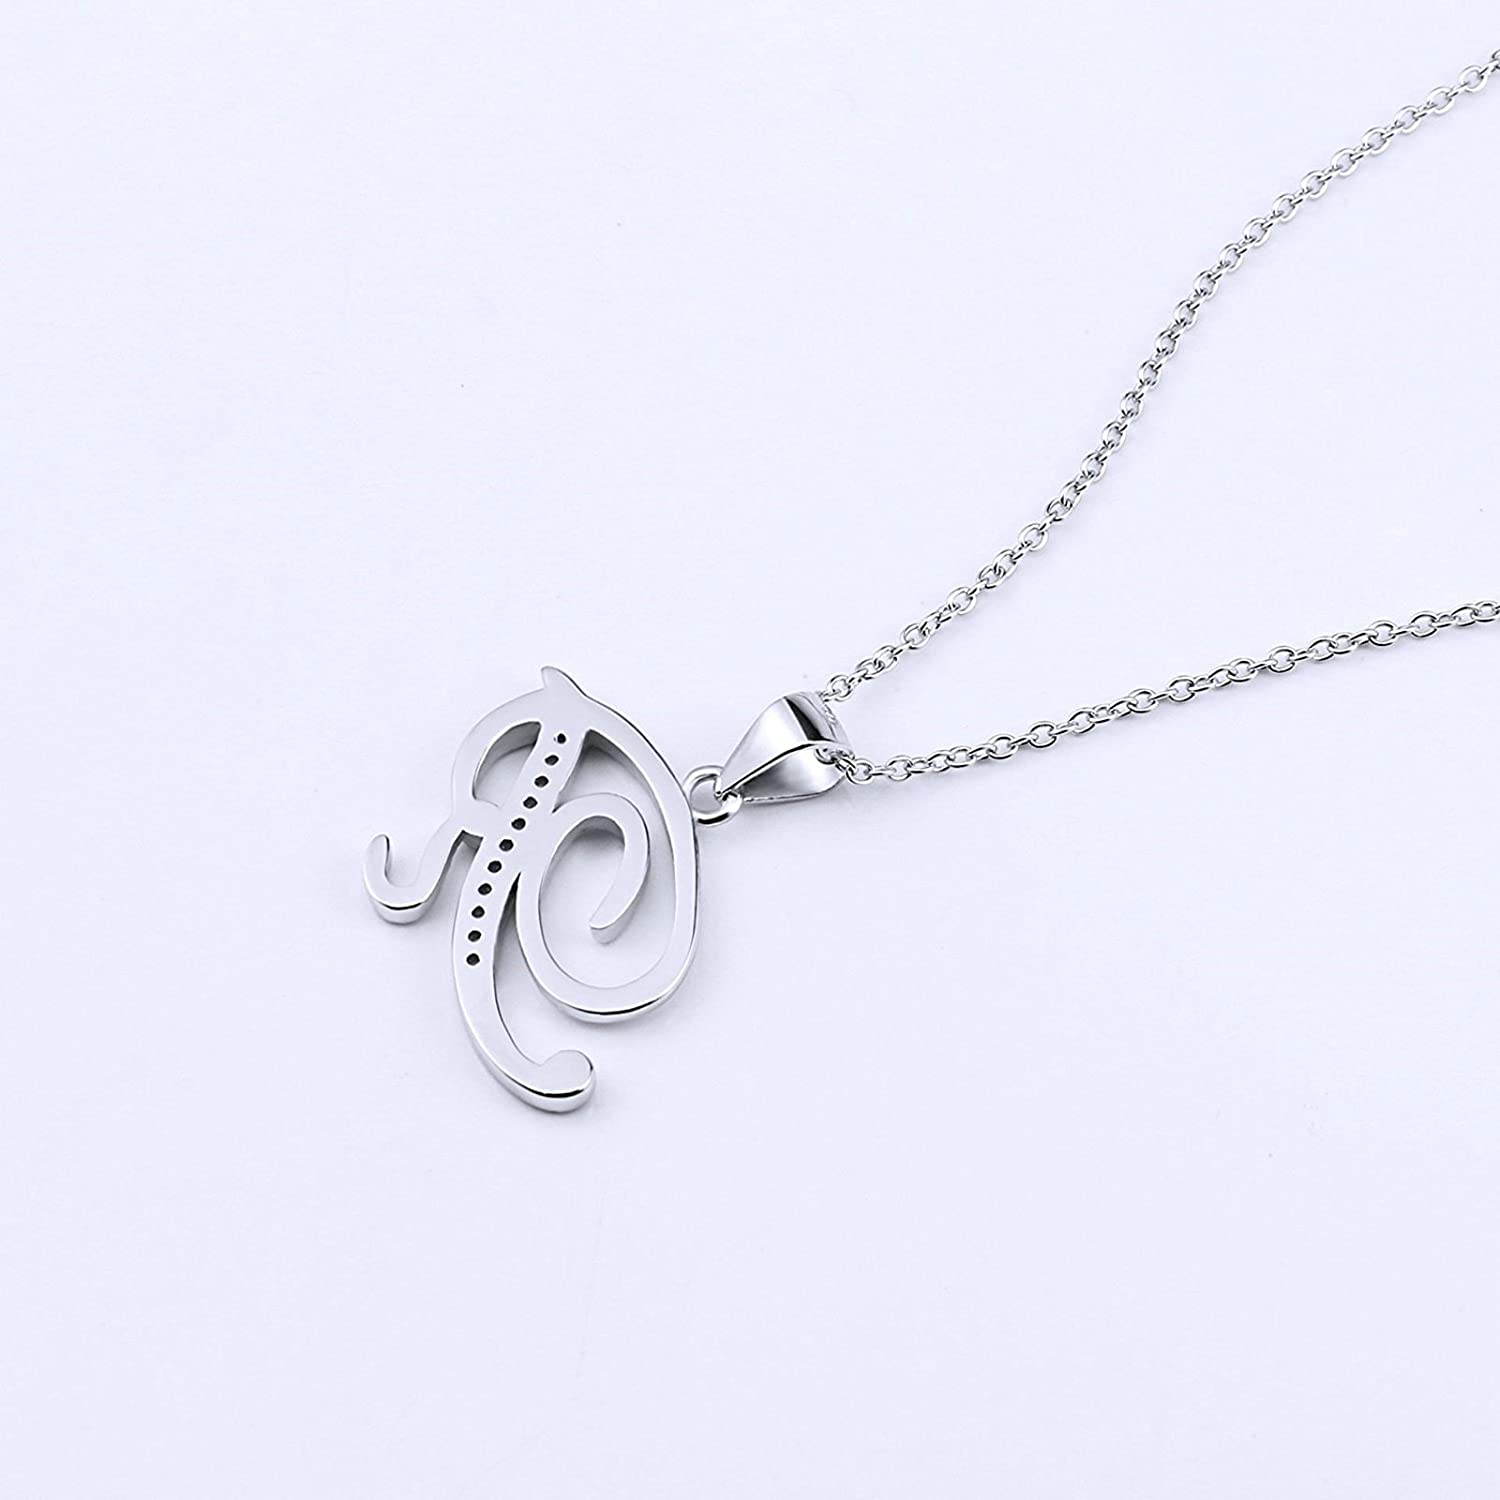 Aooaz Jewelry Fashion Charm Silver Plated Cubic Zirconia 26 Letters Alphabet Pendant Necklace